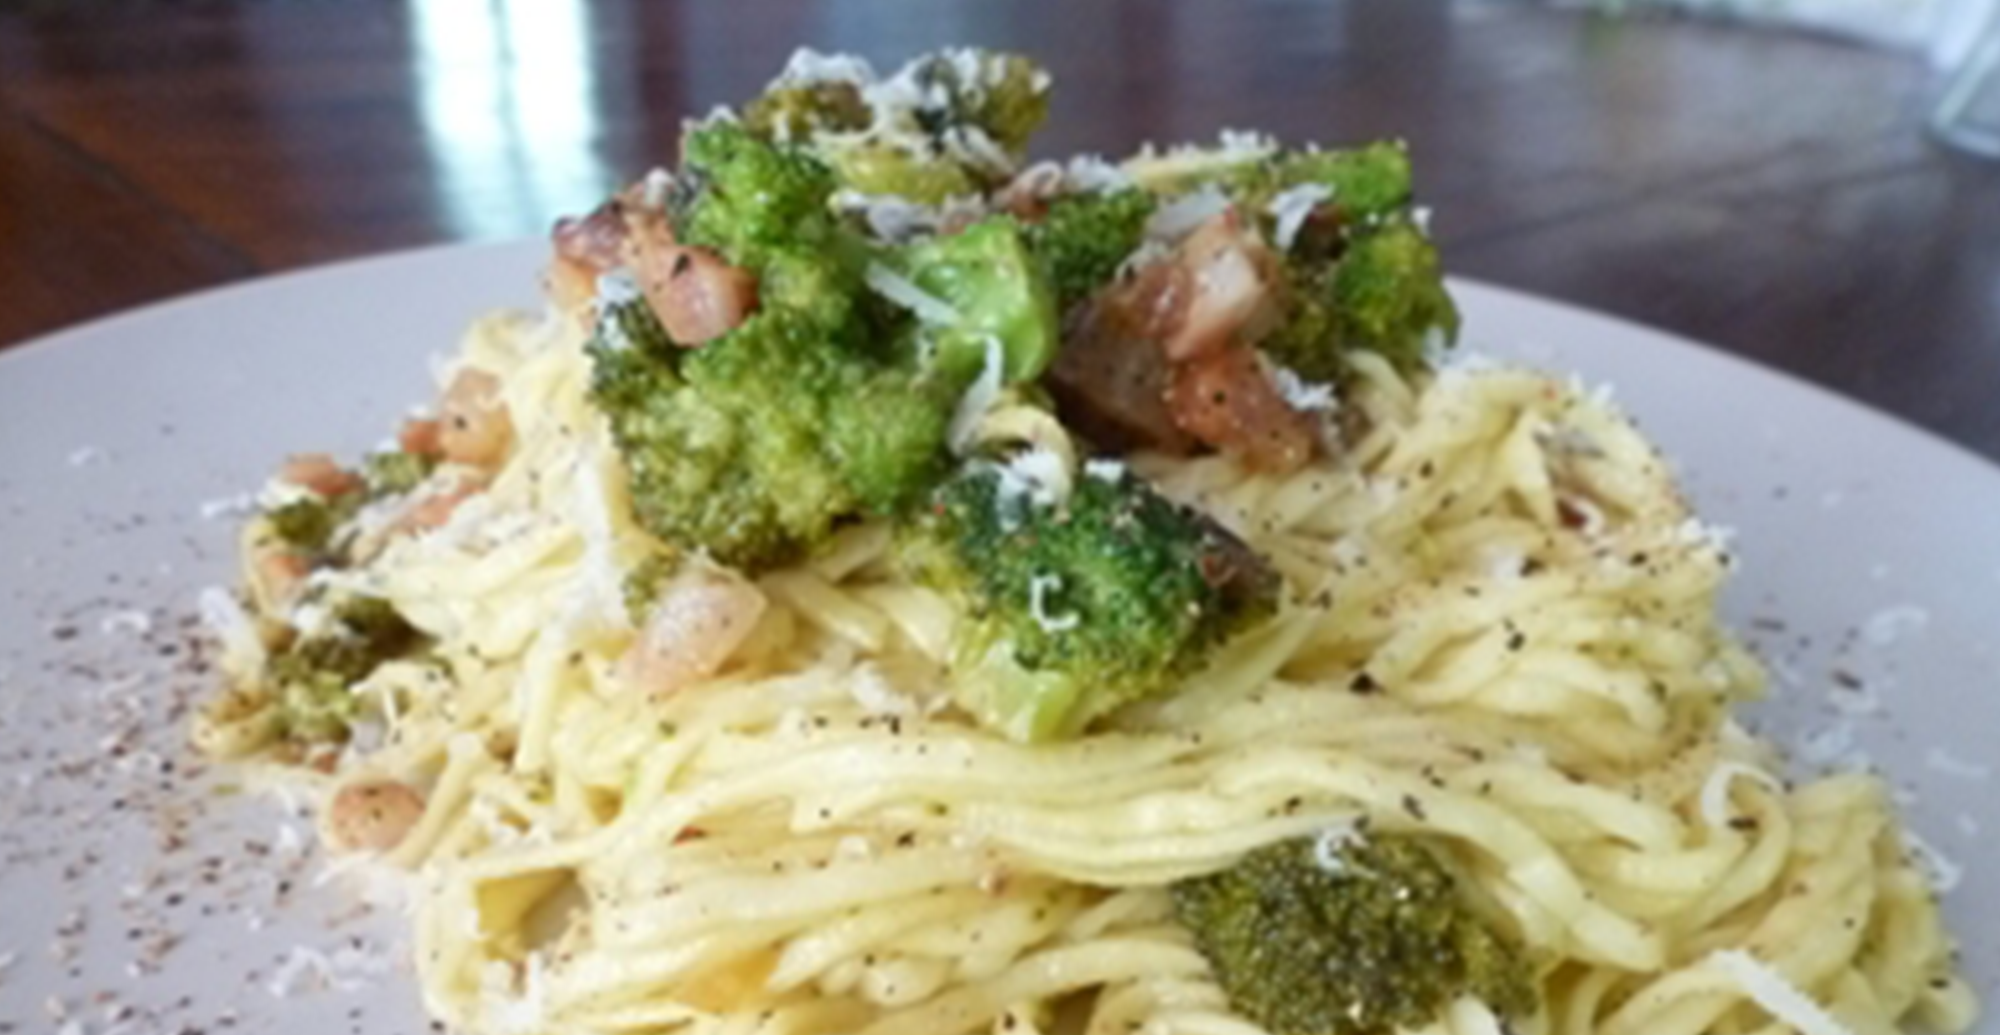 Recipe: Tagliolini Pasta with Fresh Broccoli